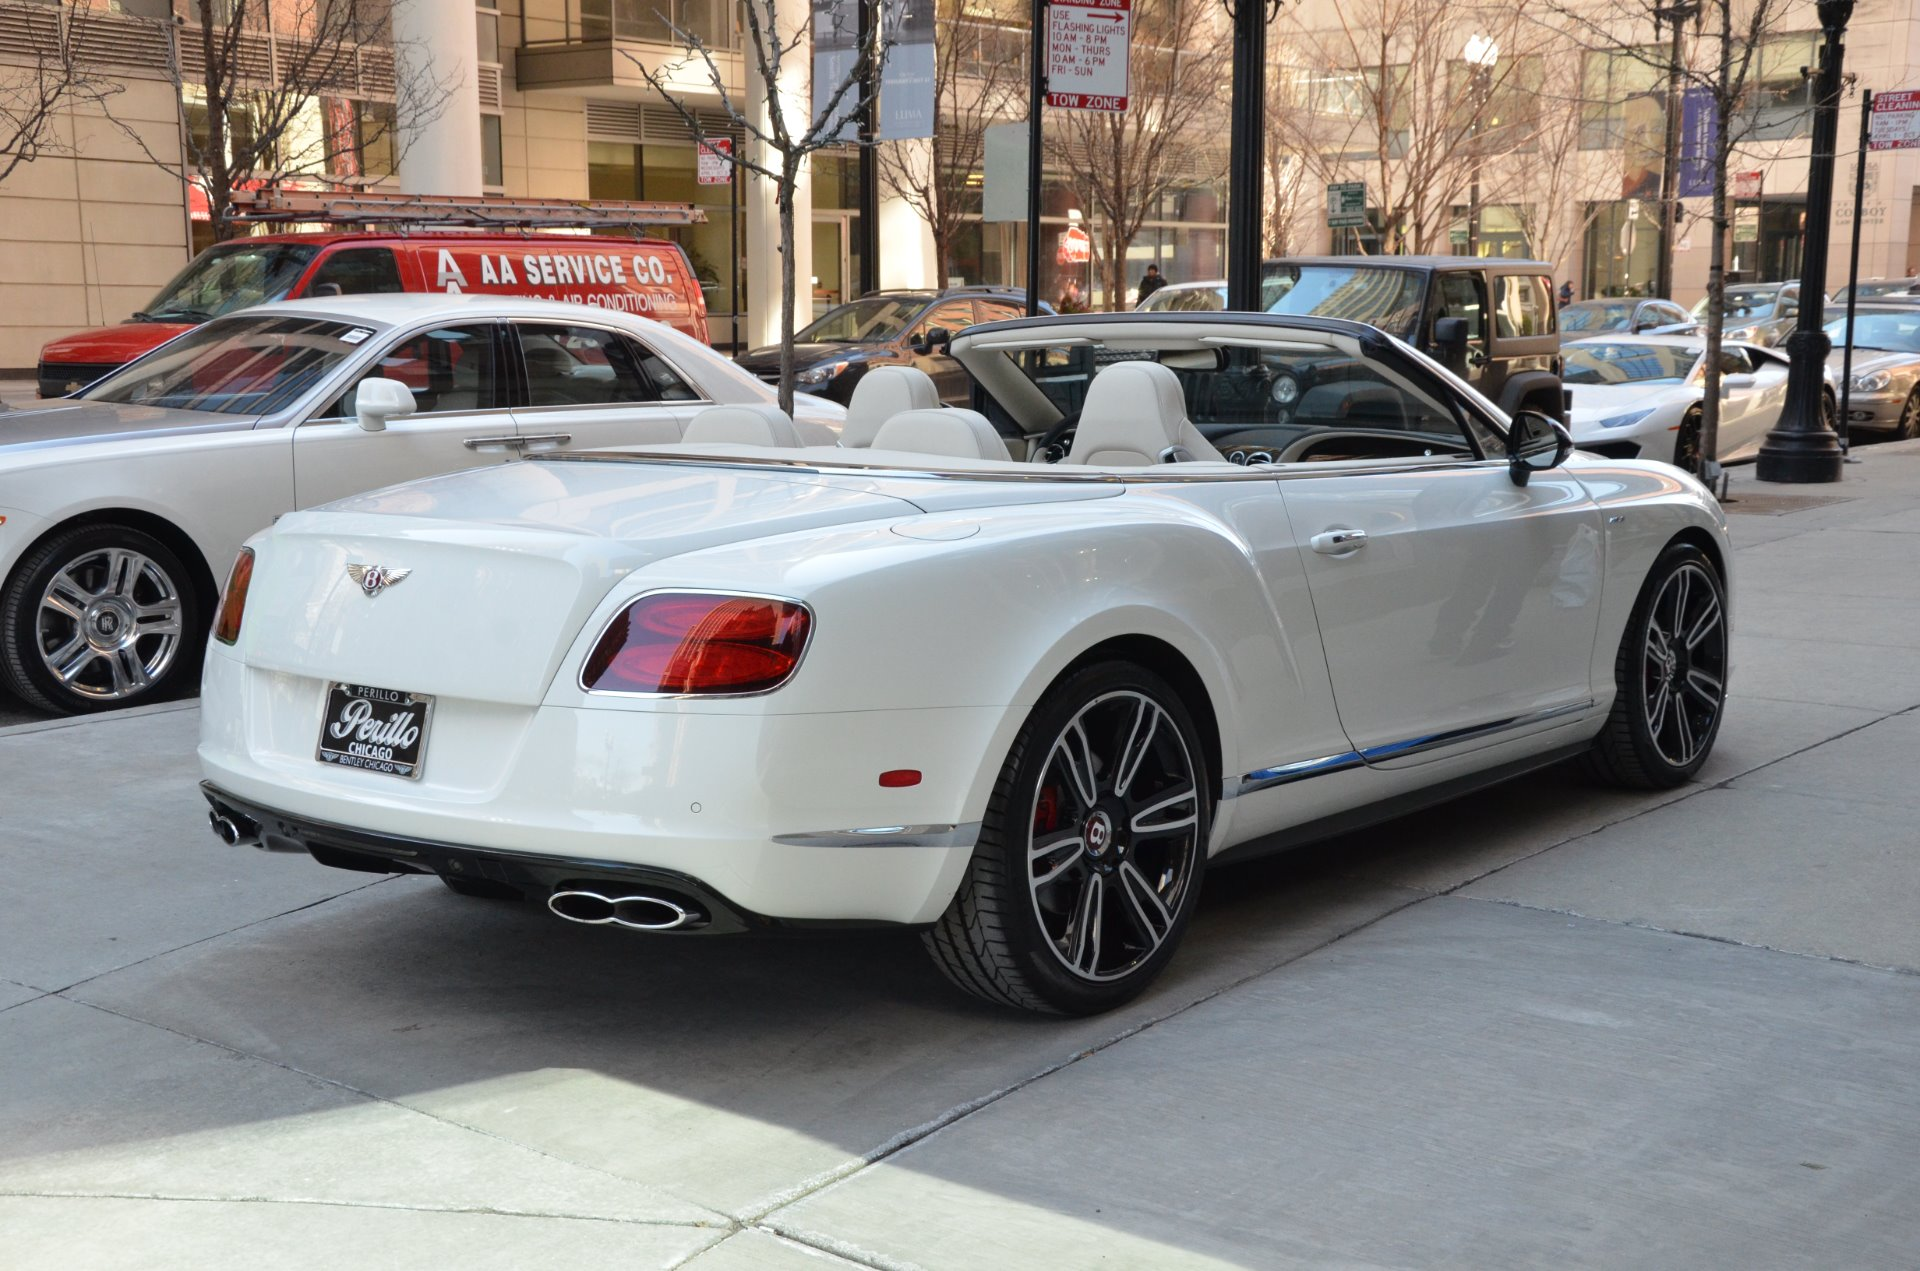 2015 Bentley Continental GTC V8 S Stock GC1881 for sale near